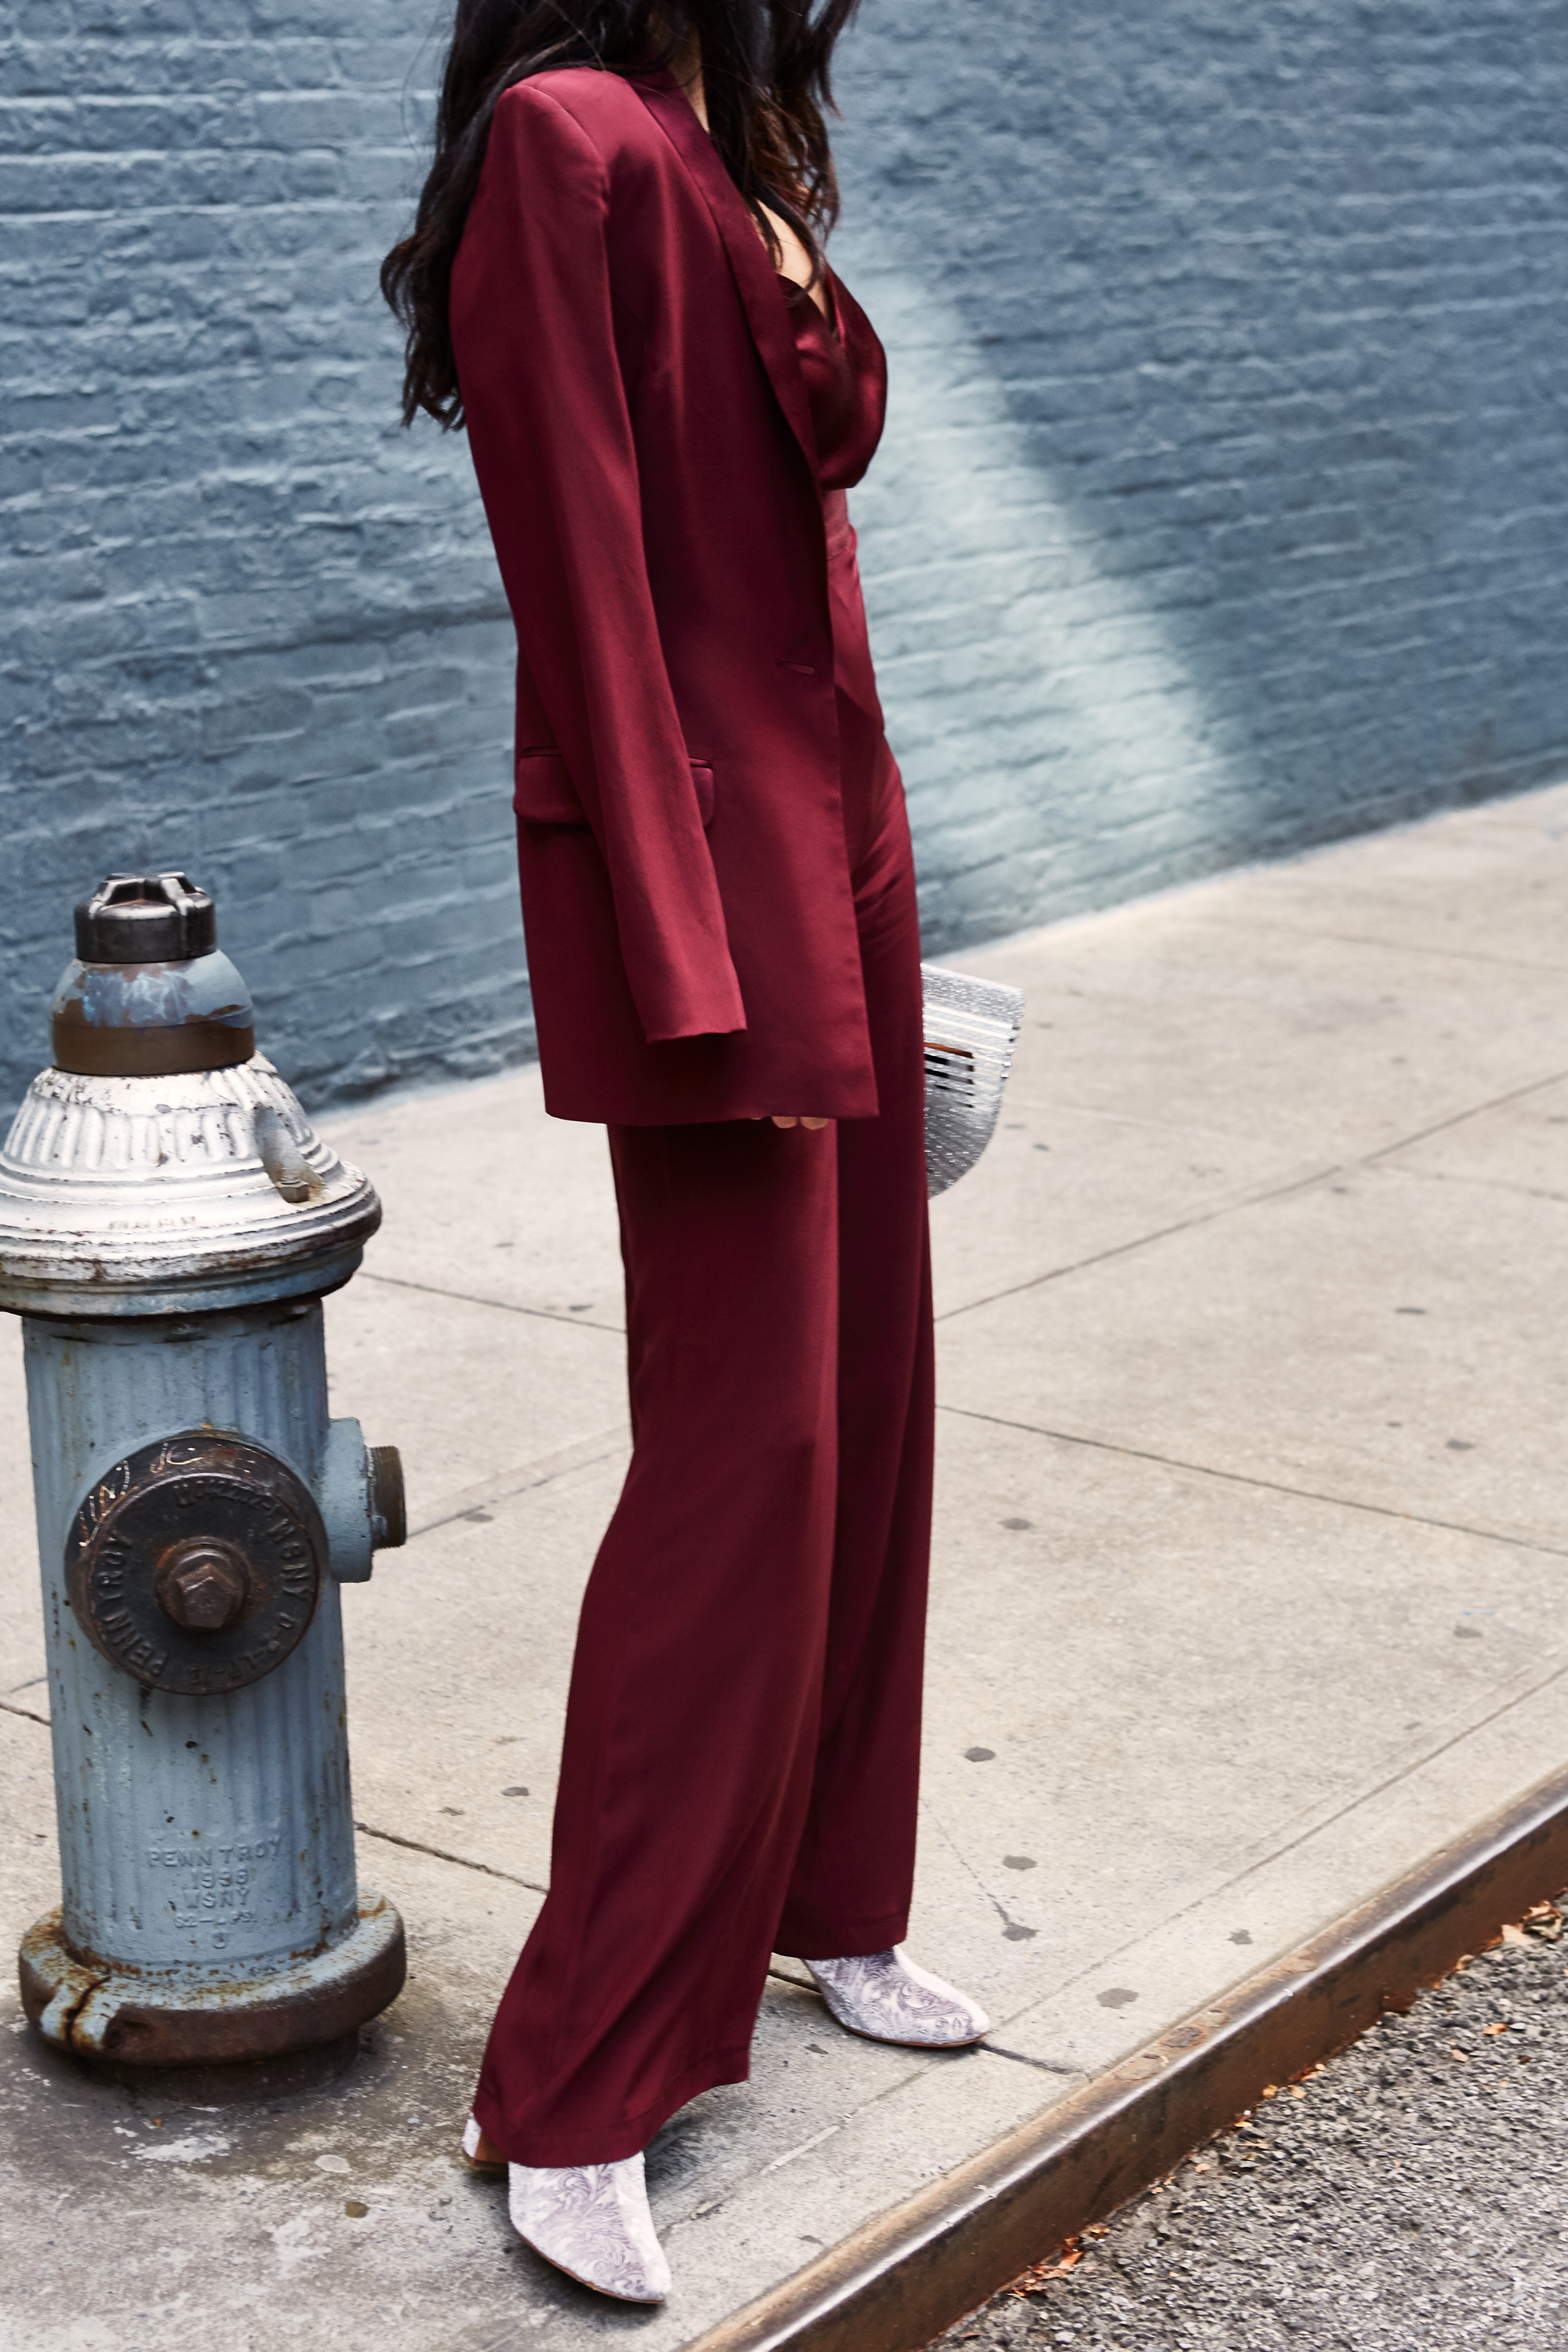 NYFW Recap #1 Julia Friedman, burgundy pant suit.